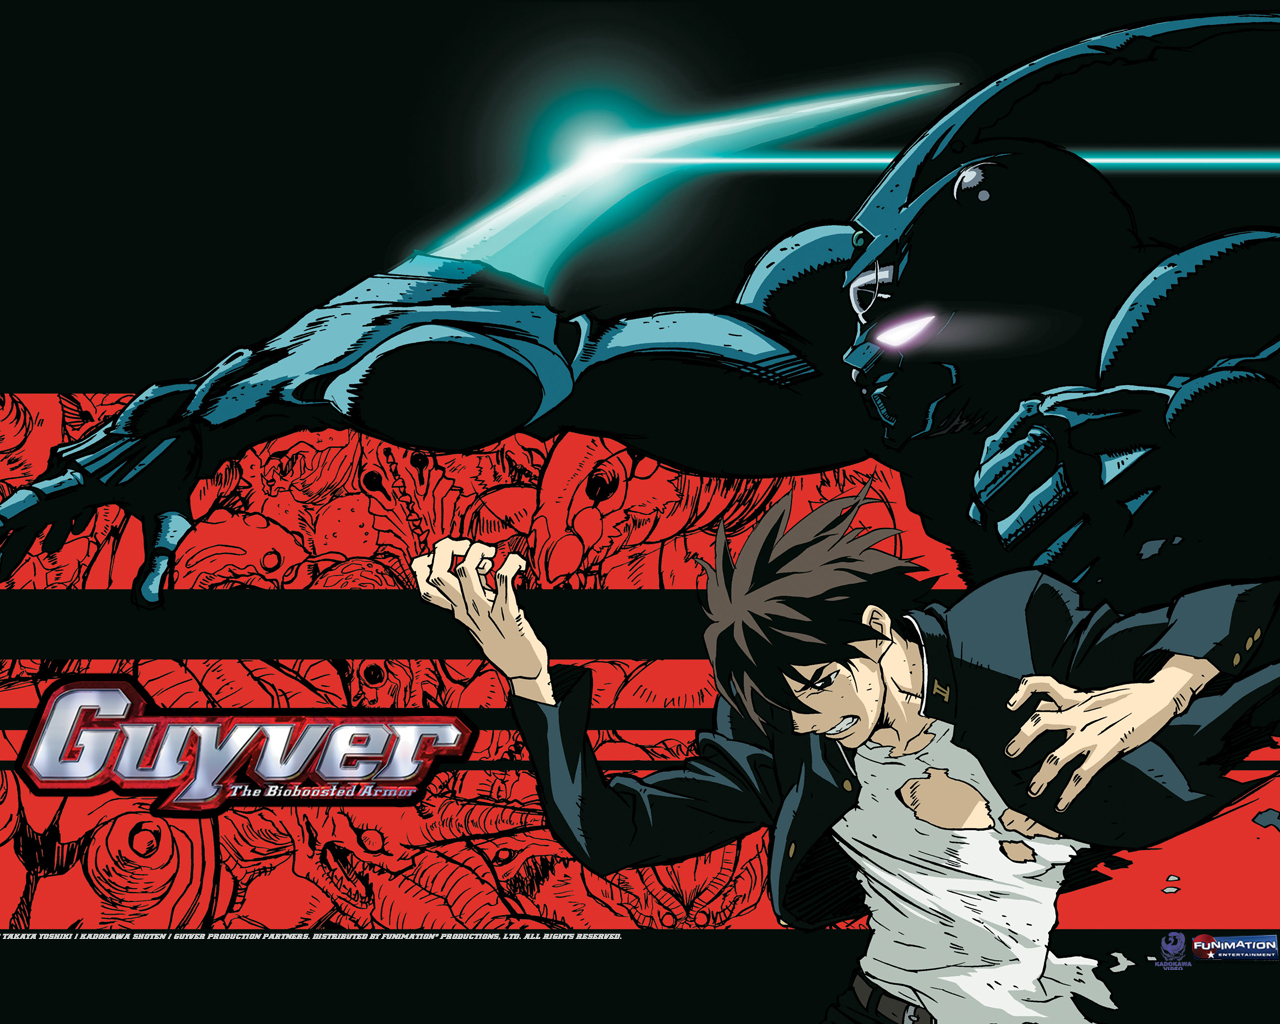 Guyver The Bioboosted Armor #2